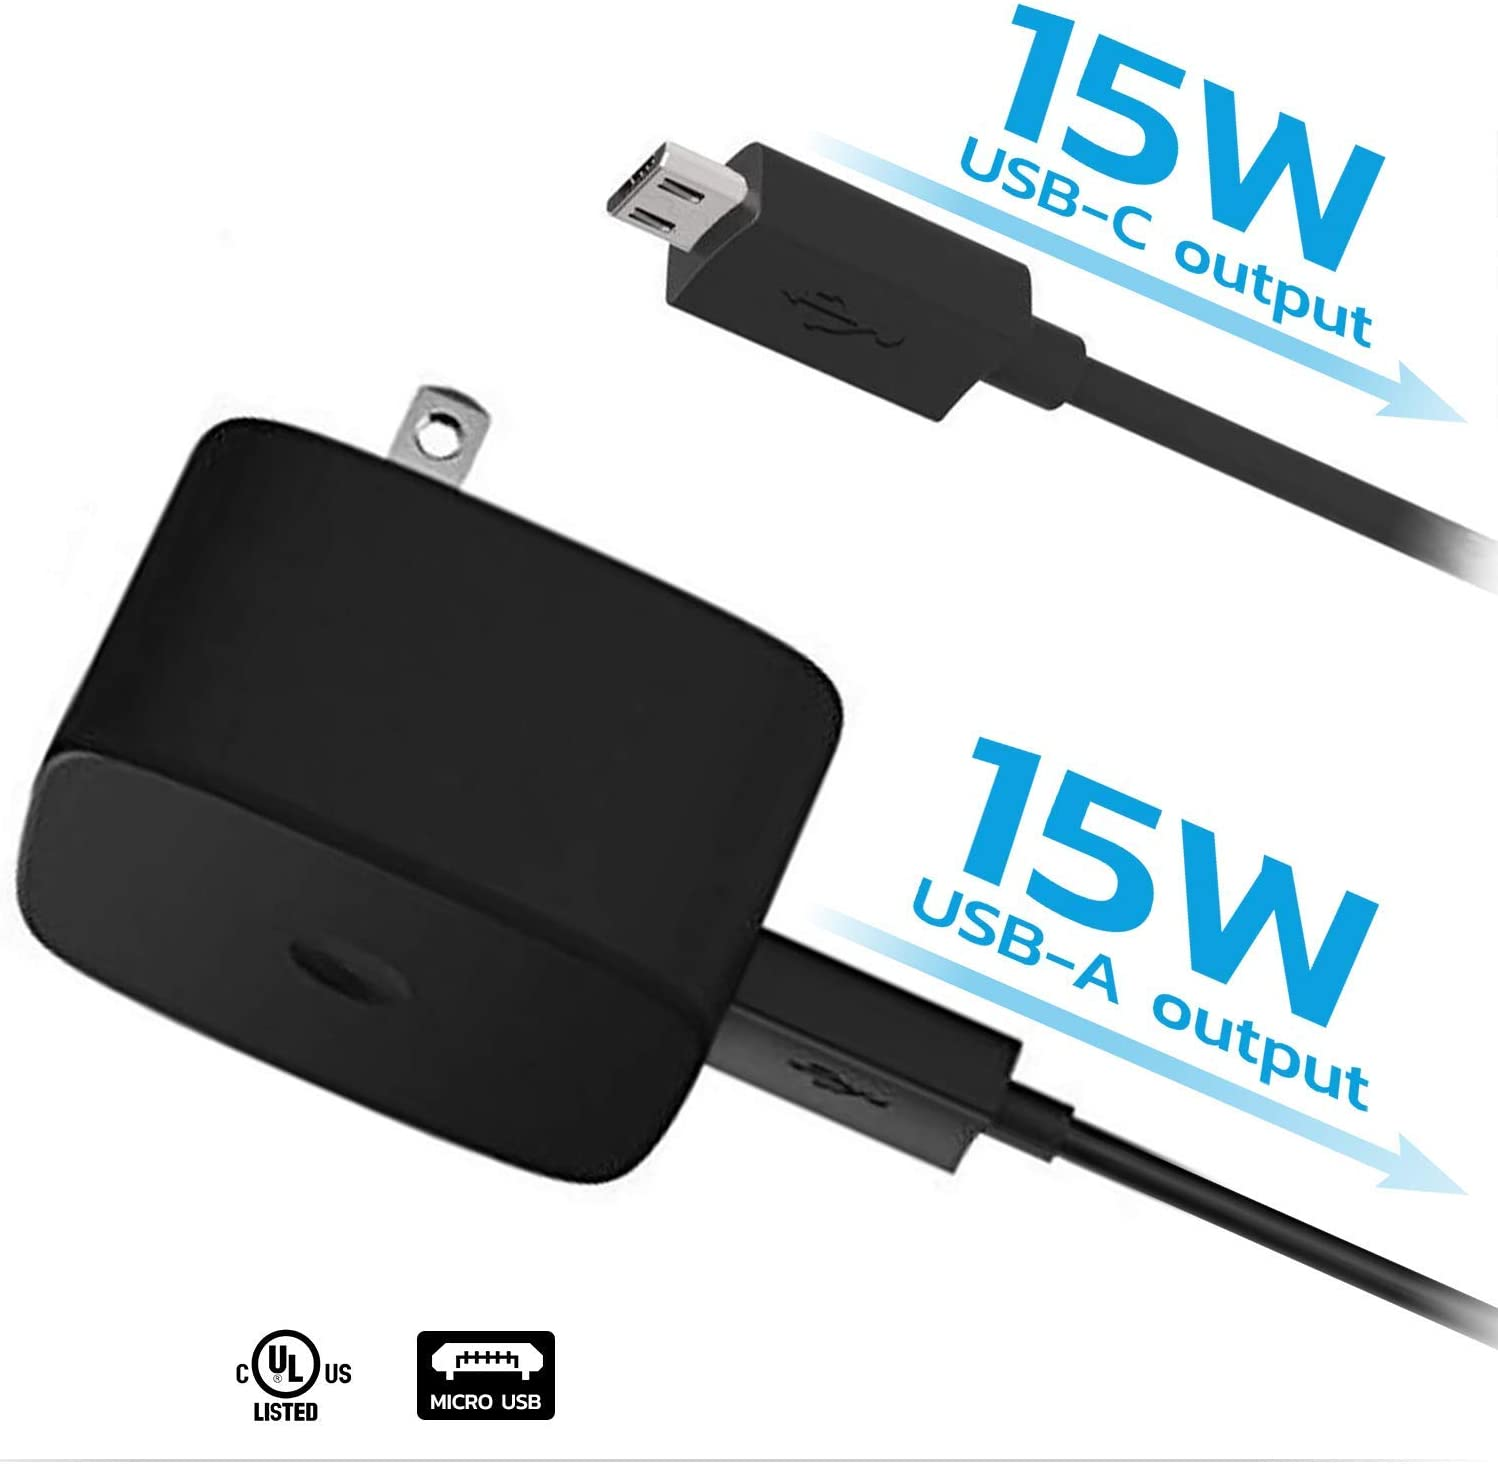 3.3ft USB MicroUSB Cable! Turbo Fast Powered 15W Wall Charging Kit Works for Verizon Wireless Ellipsis 7 with Quick Charge 2.0 USB 1M